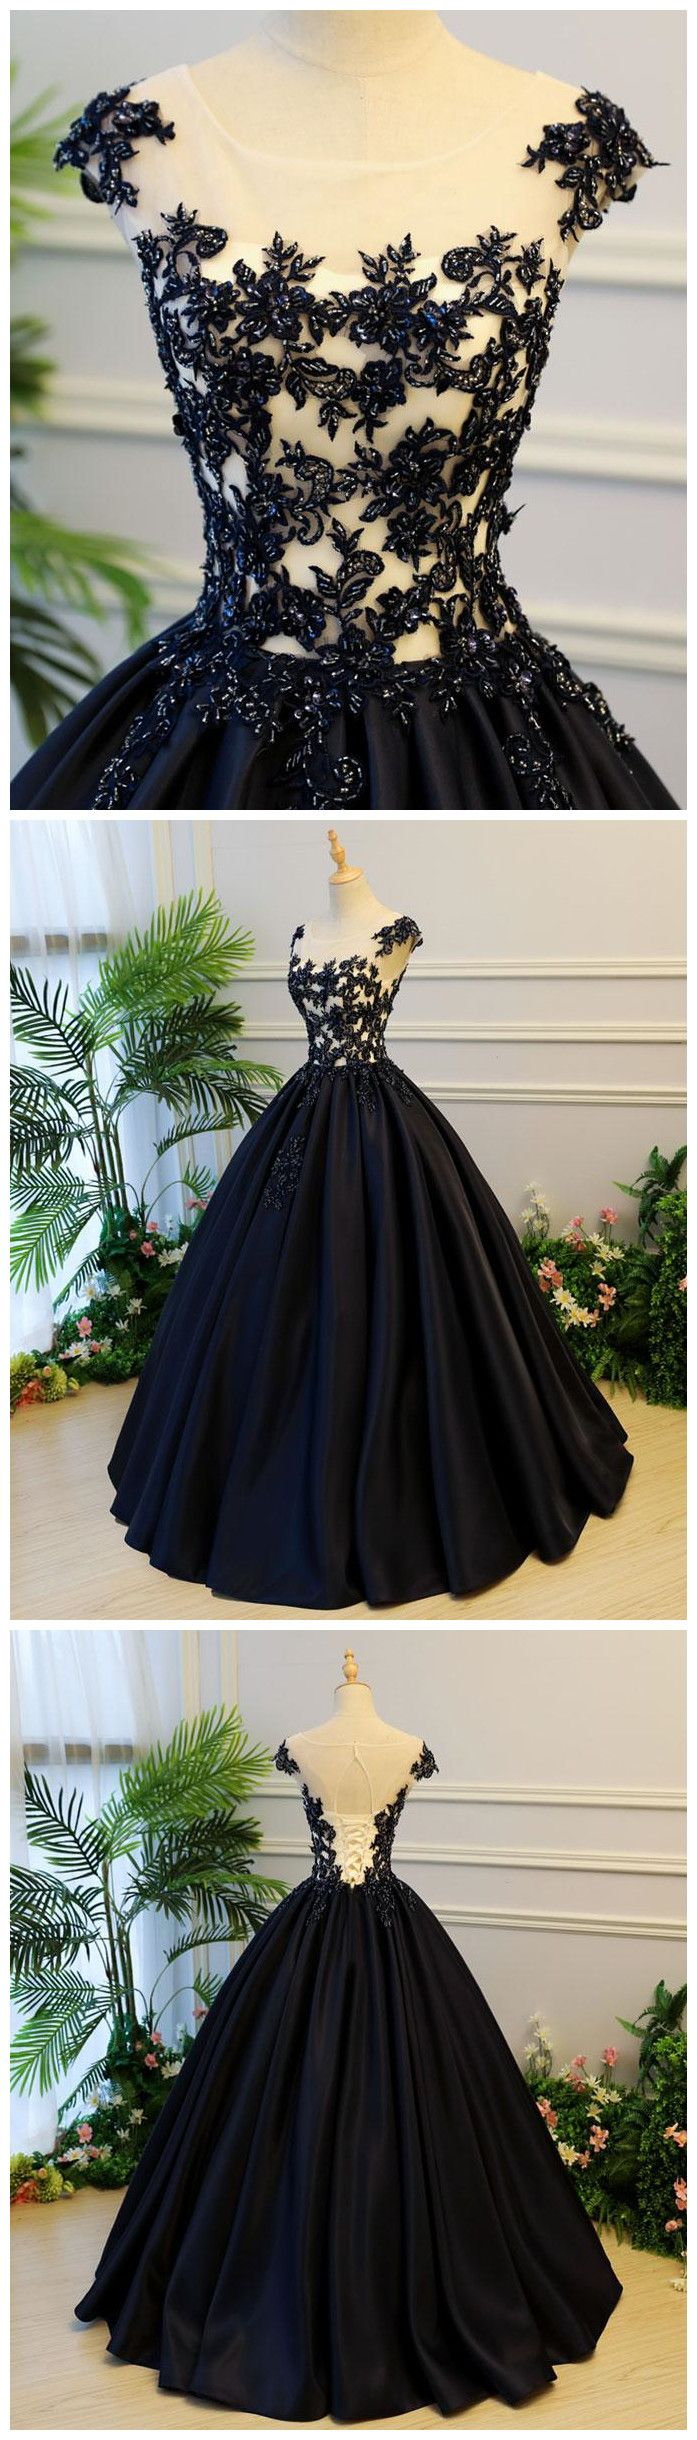 Generous A-Line Round Neck Cap Sleeves Lace-up Back Black Satin Long Prom/Evening Dress with Beading P0375 #promdresses #longpromdress #2018promdresses #fashionpromdresses #charmingpromdresses #2018newstyles #fashions #styles #hiprom #prom #ballgown #2018 #tulle